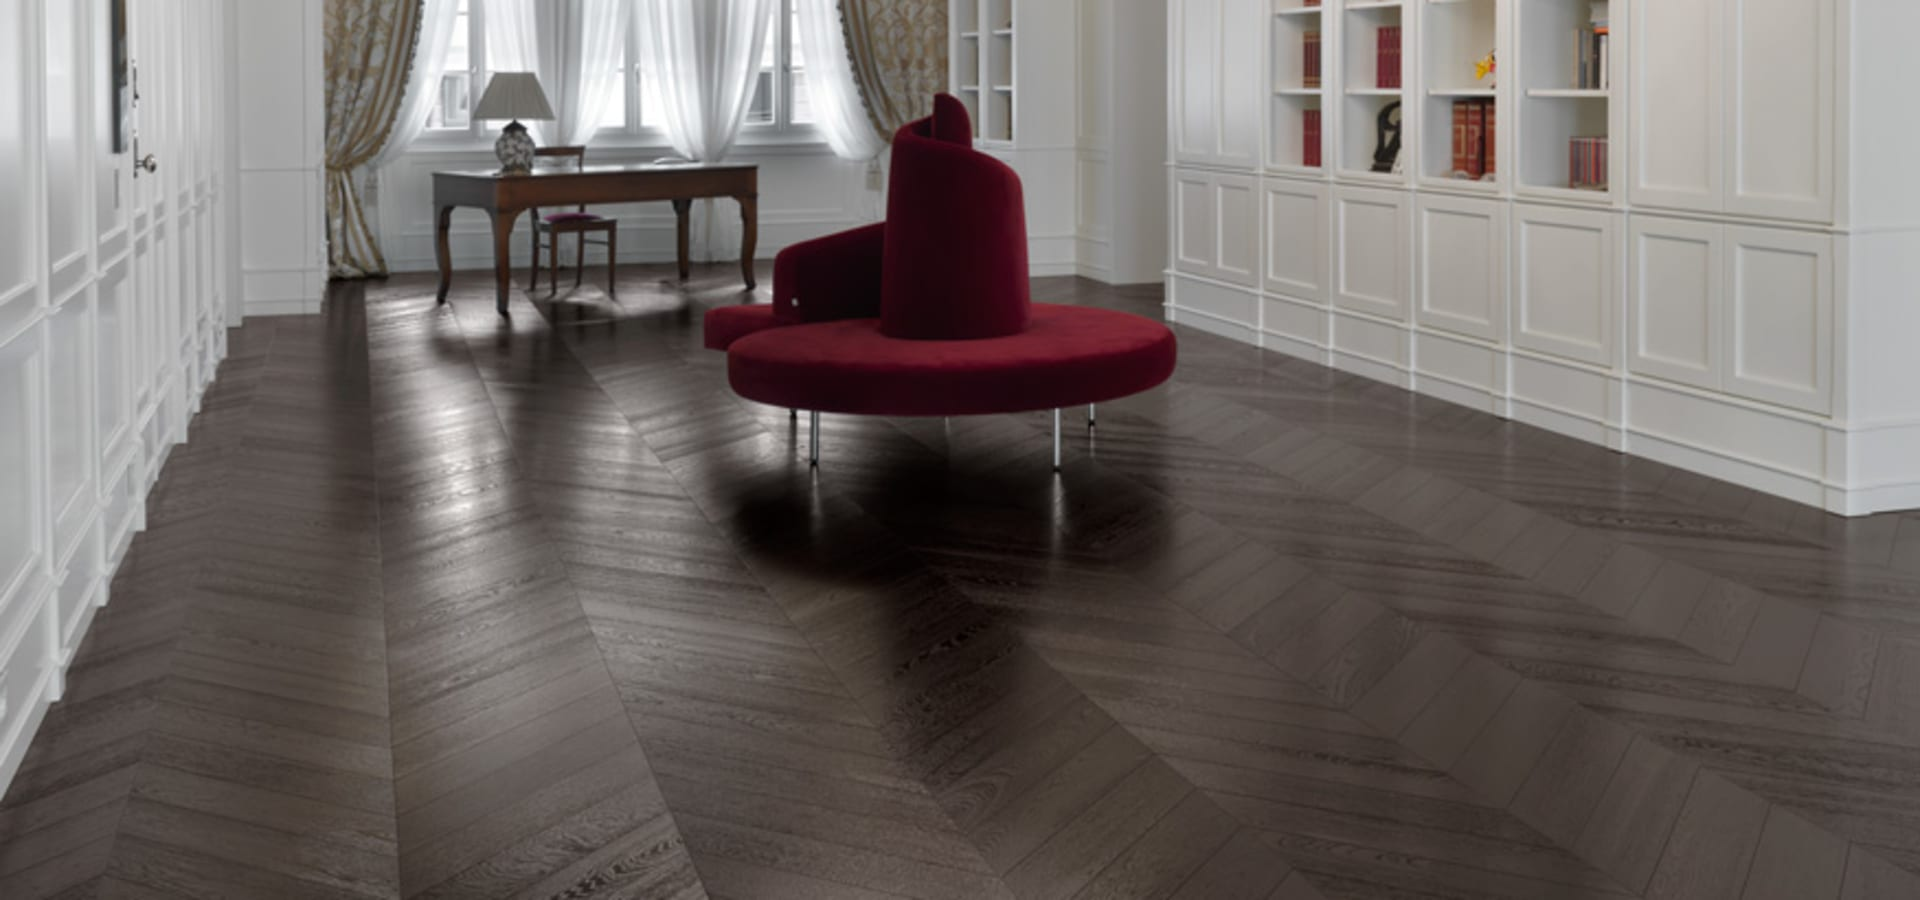 Cadorin Group Srl – Top Quality Wood Flooring